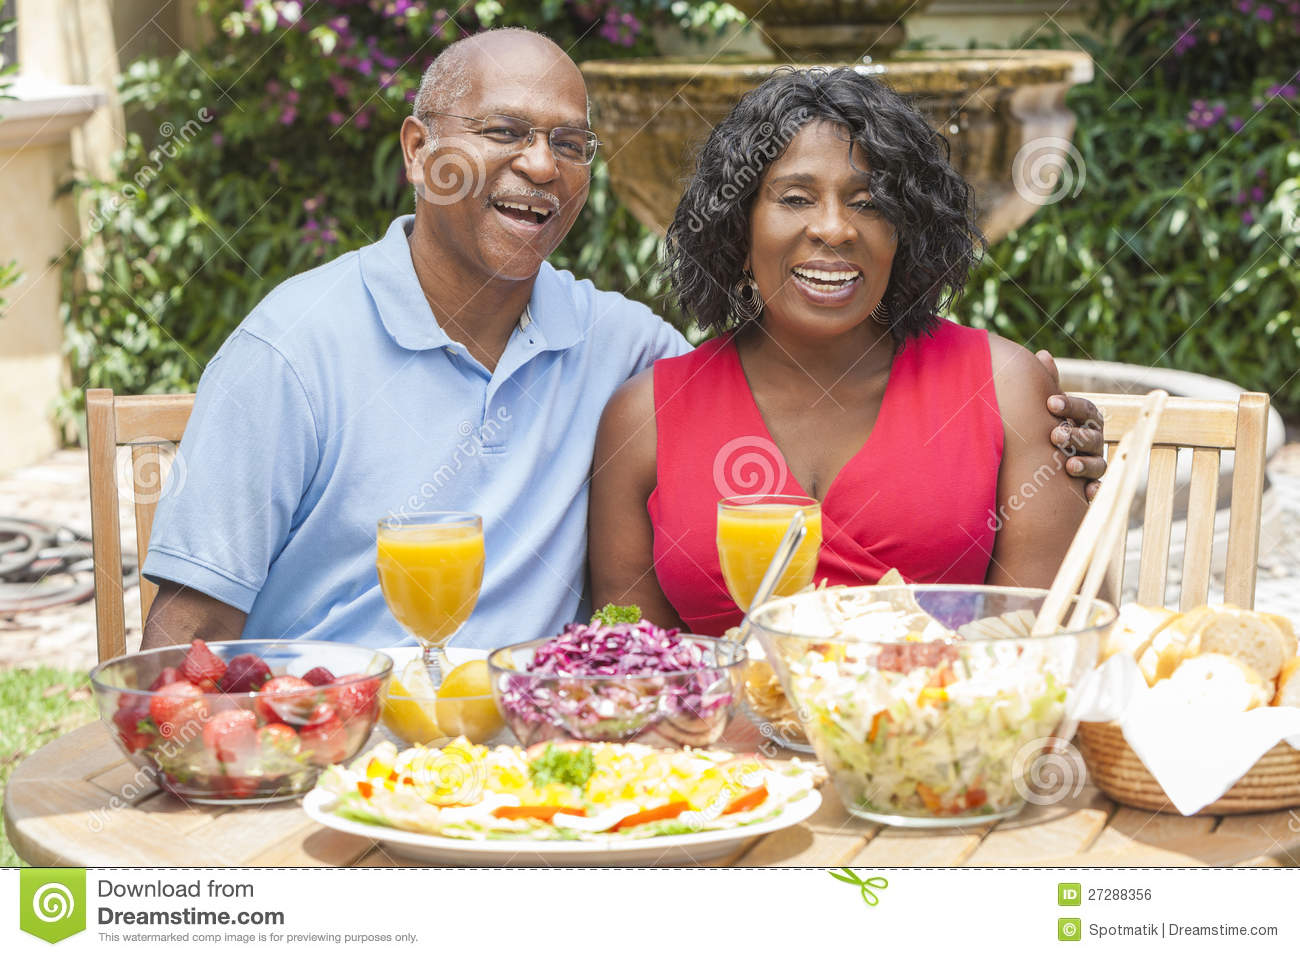 ... Couple Eating Outside Royalty Free Stock Image - Image: 27288356